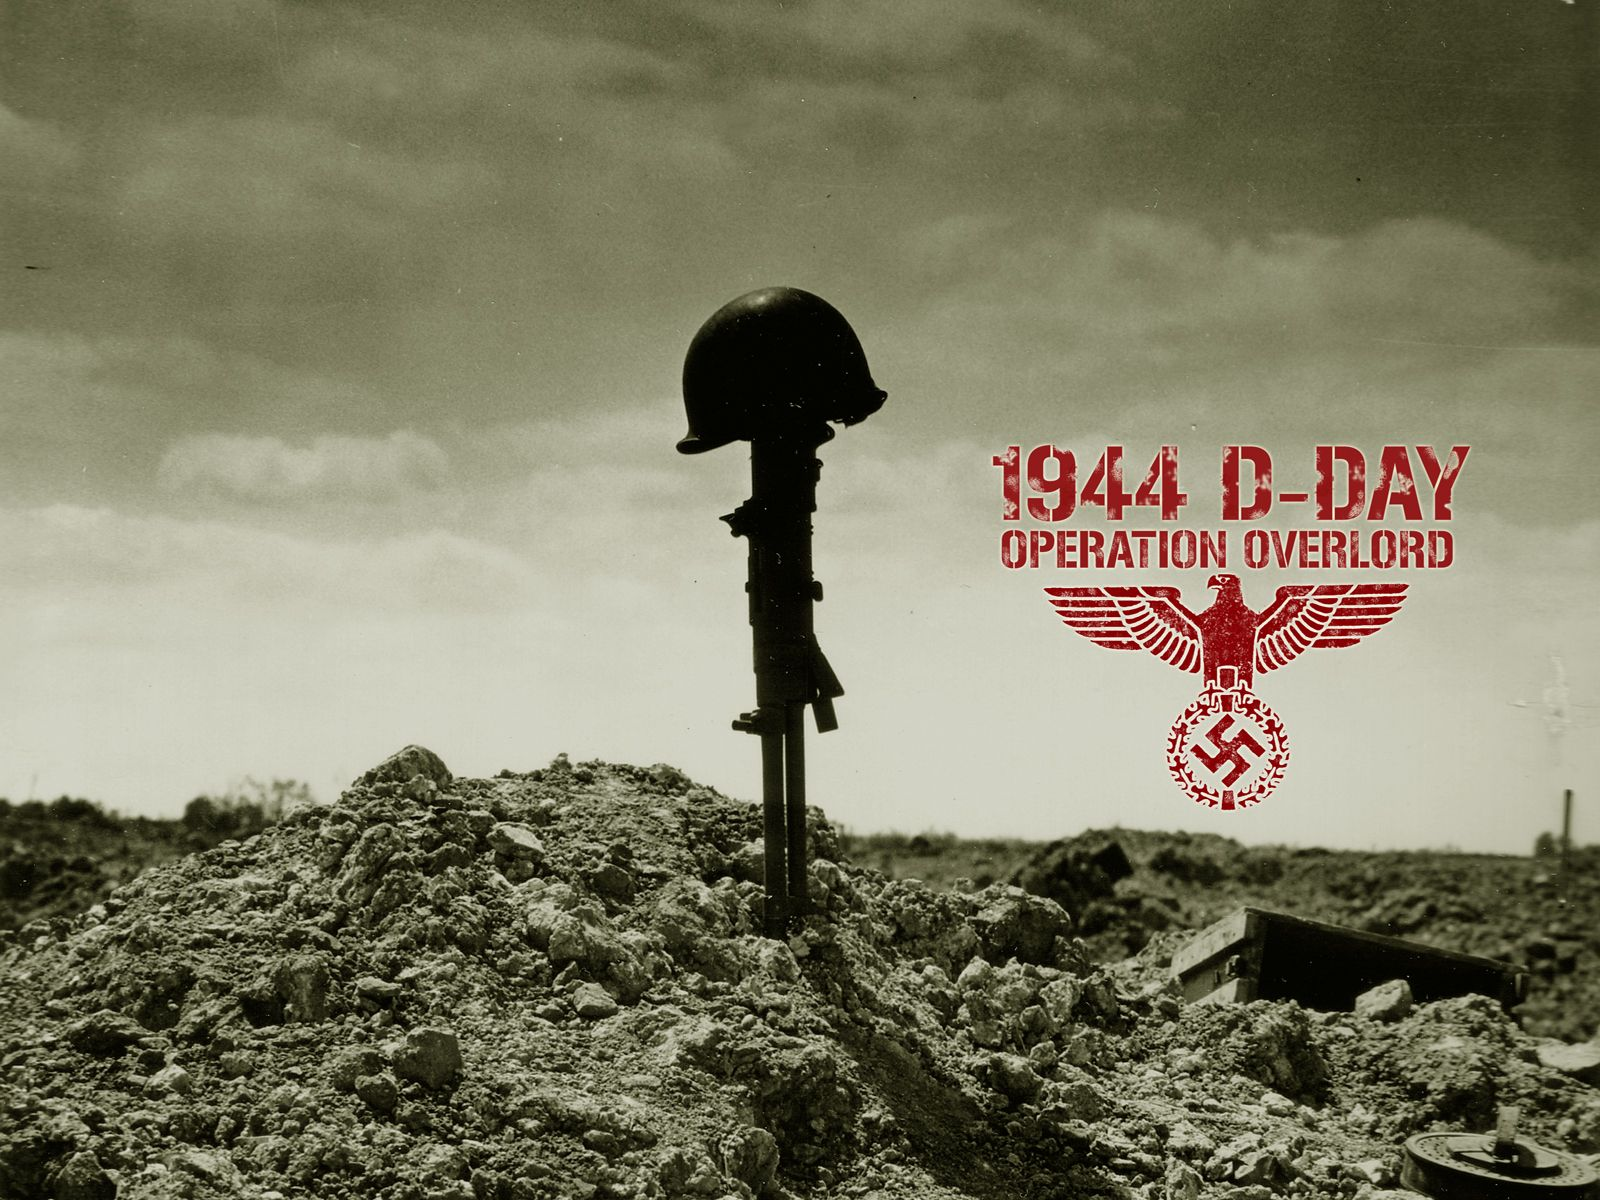 D day war pictures high def world war ii d day desktop - World war 2 desktop wallpaper ...